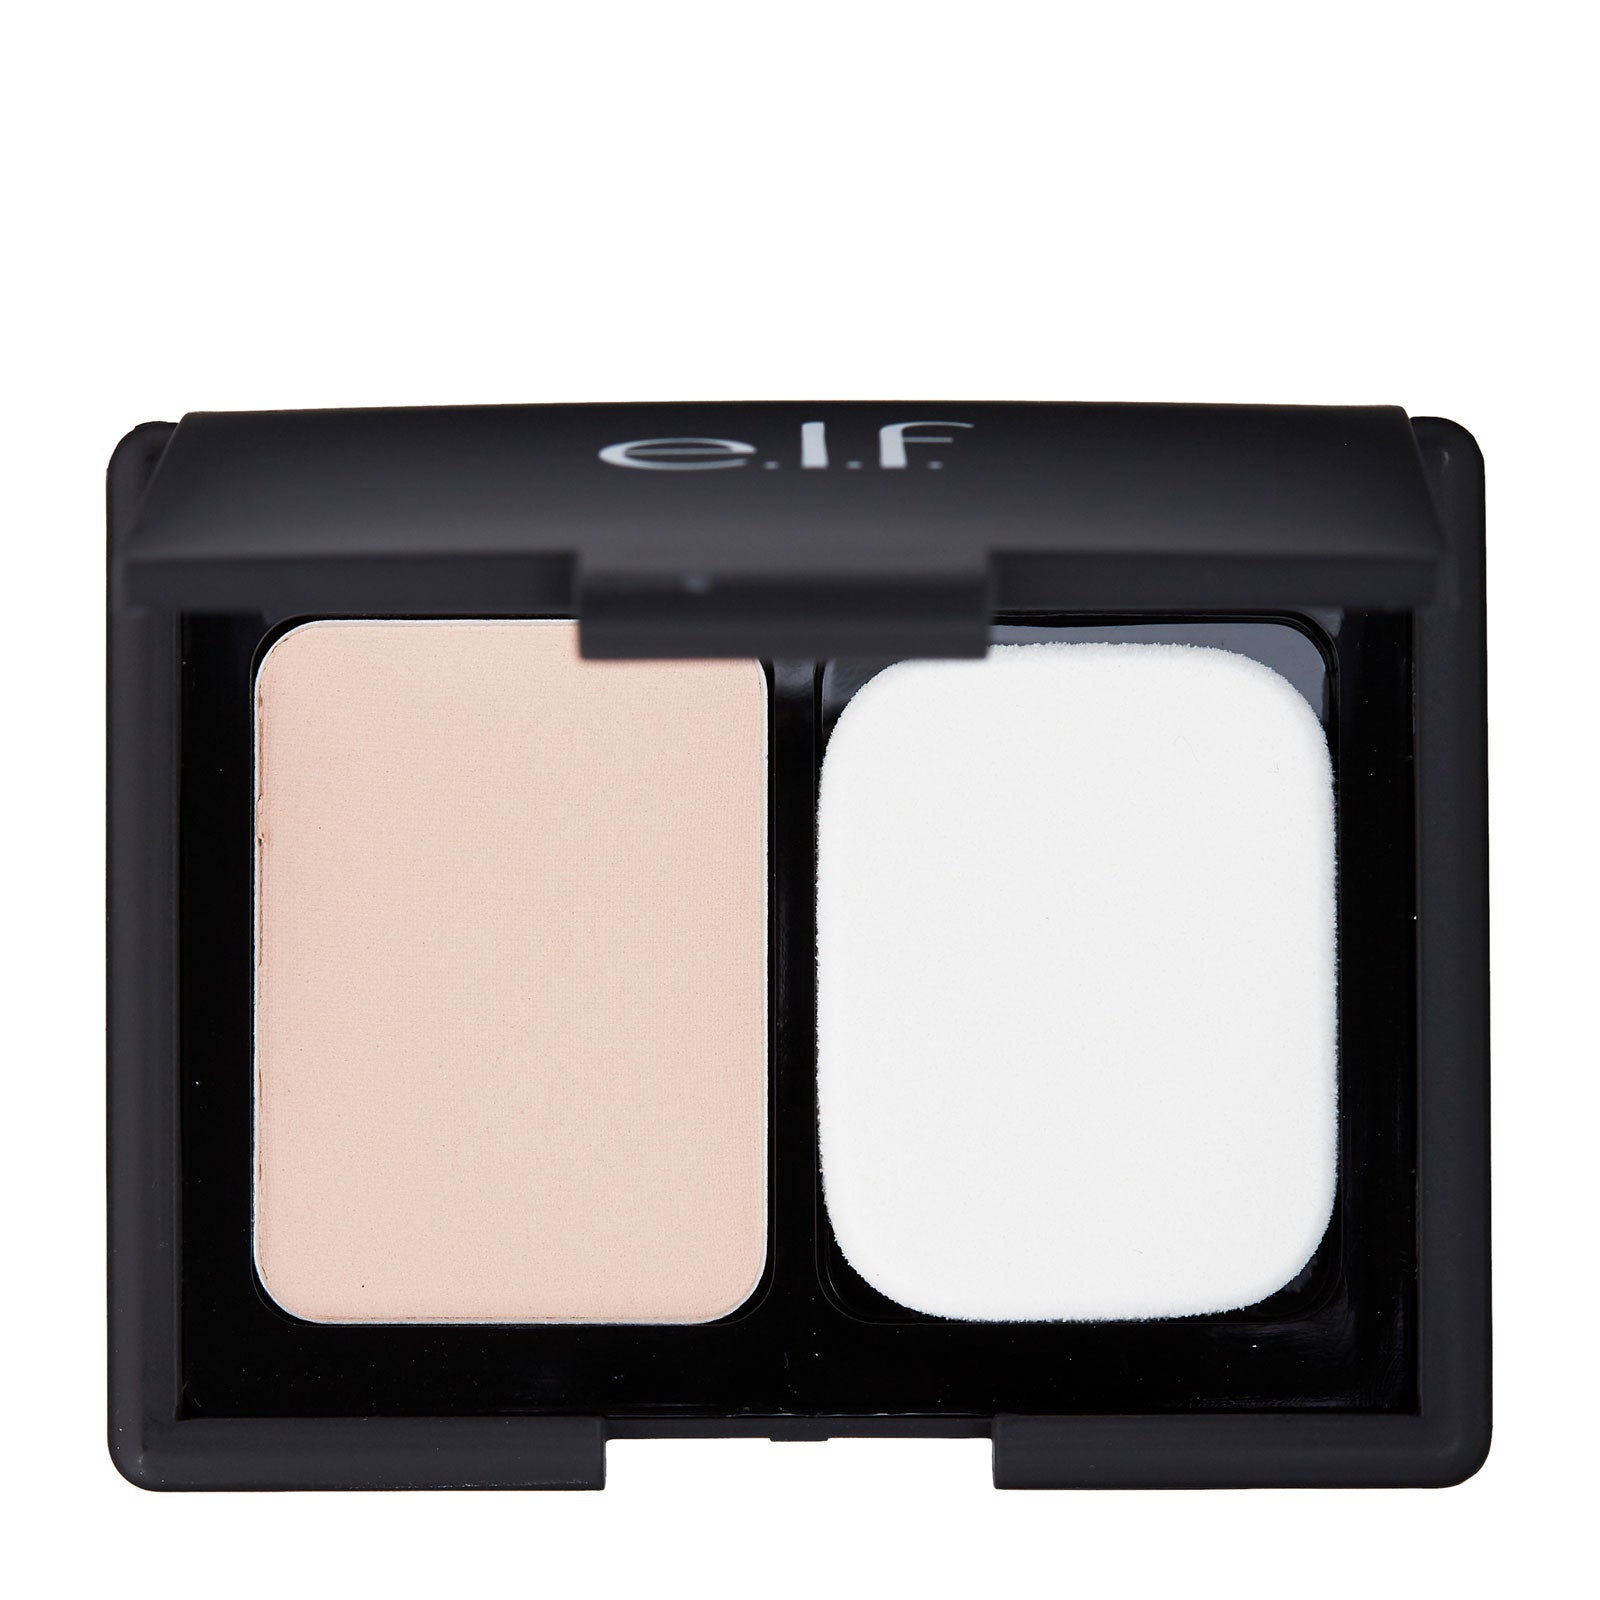 e.l.f. Mattifying Powder 3.8g